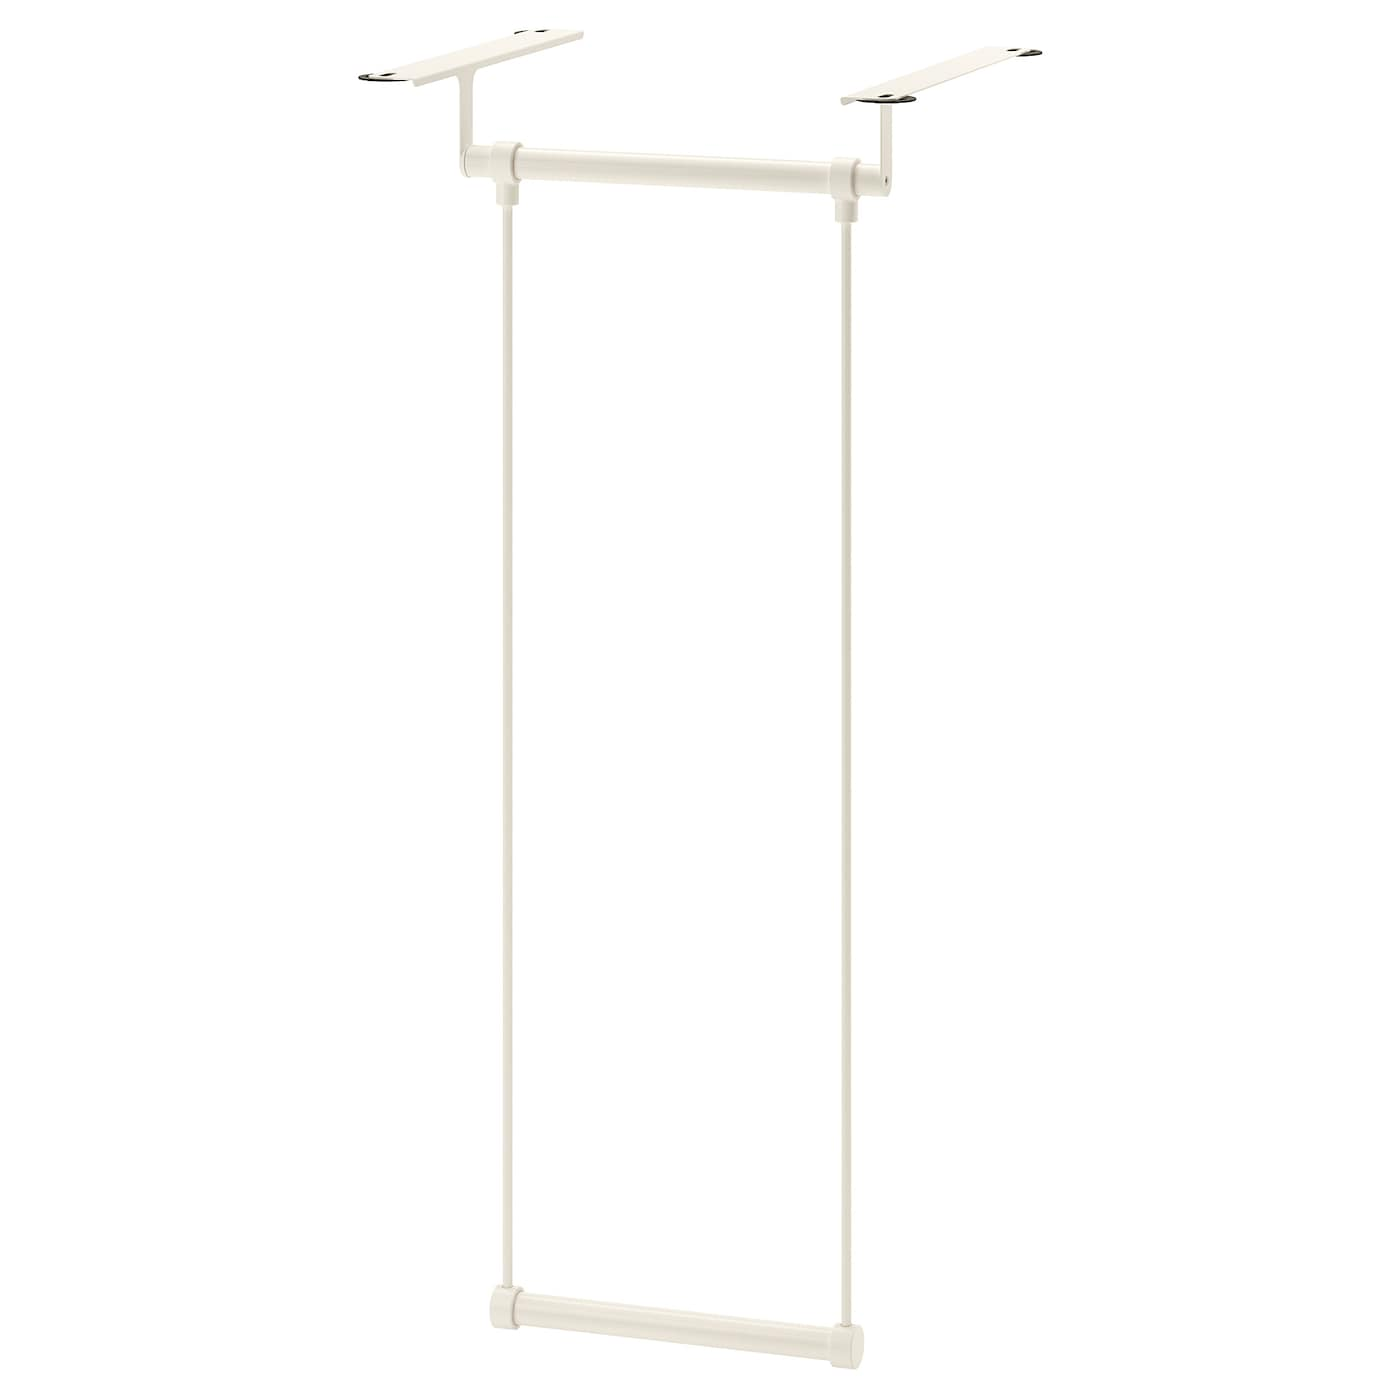 IKEA LÄTTHET clothes rail for frame You get a good overview and can easily reach your clothes.